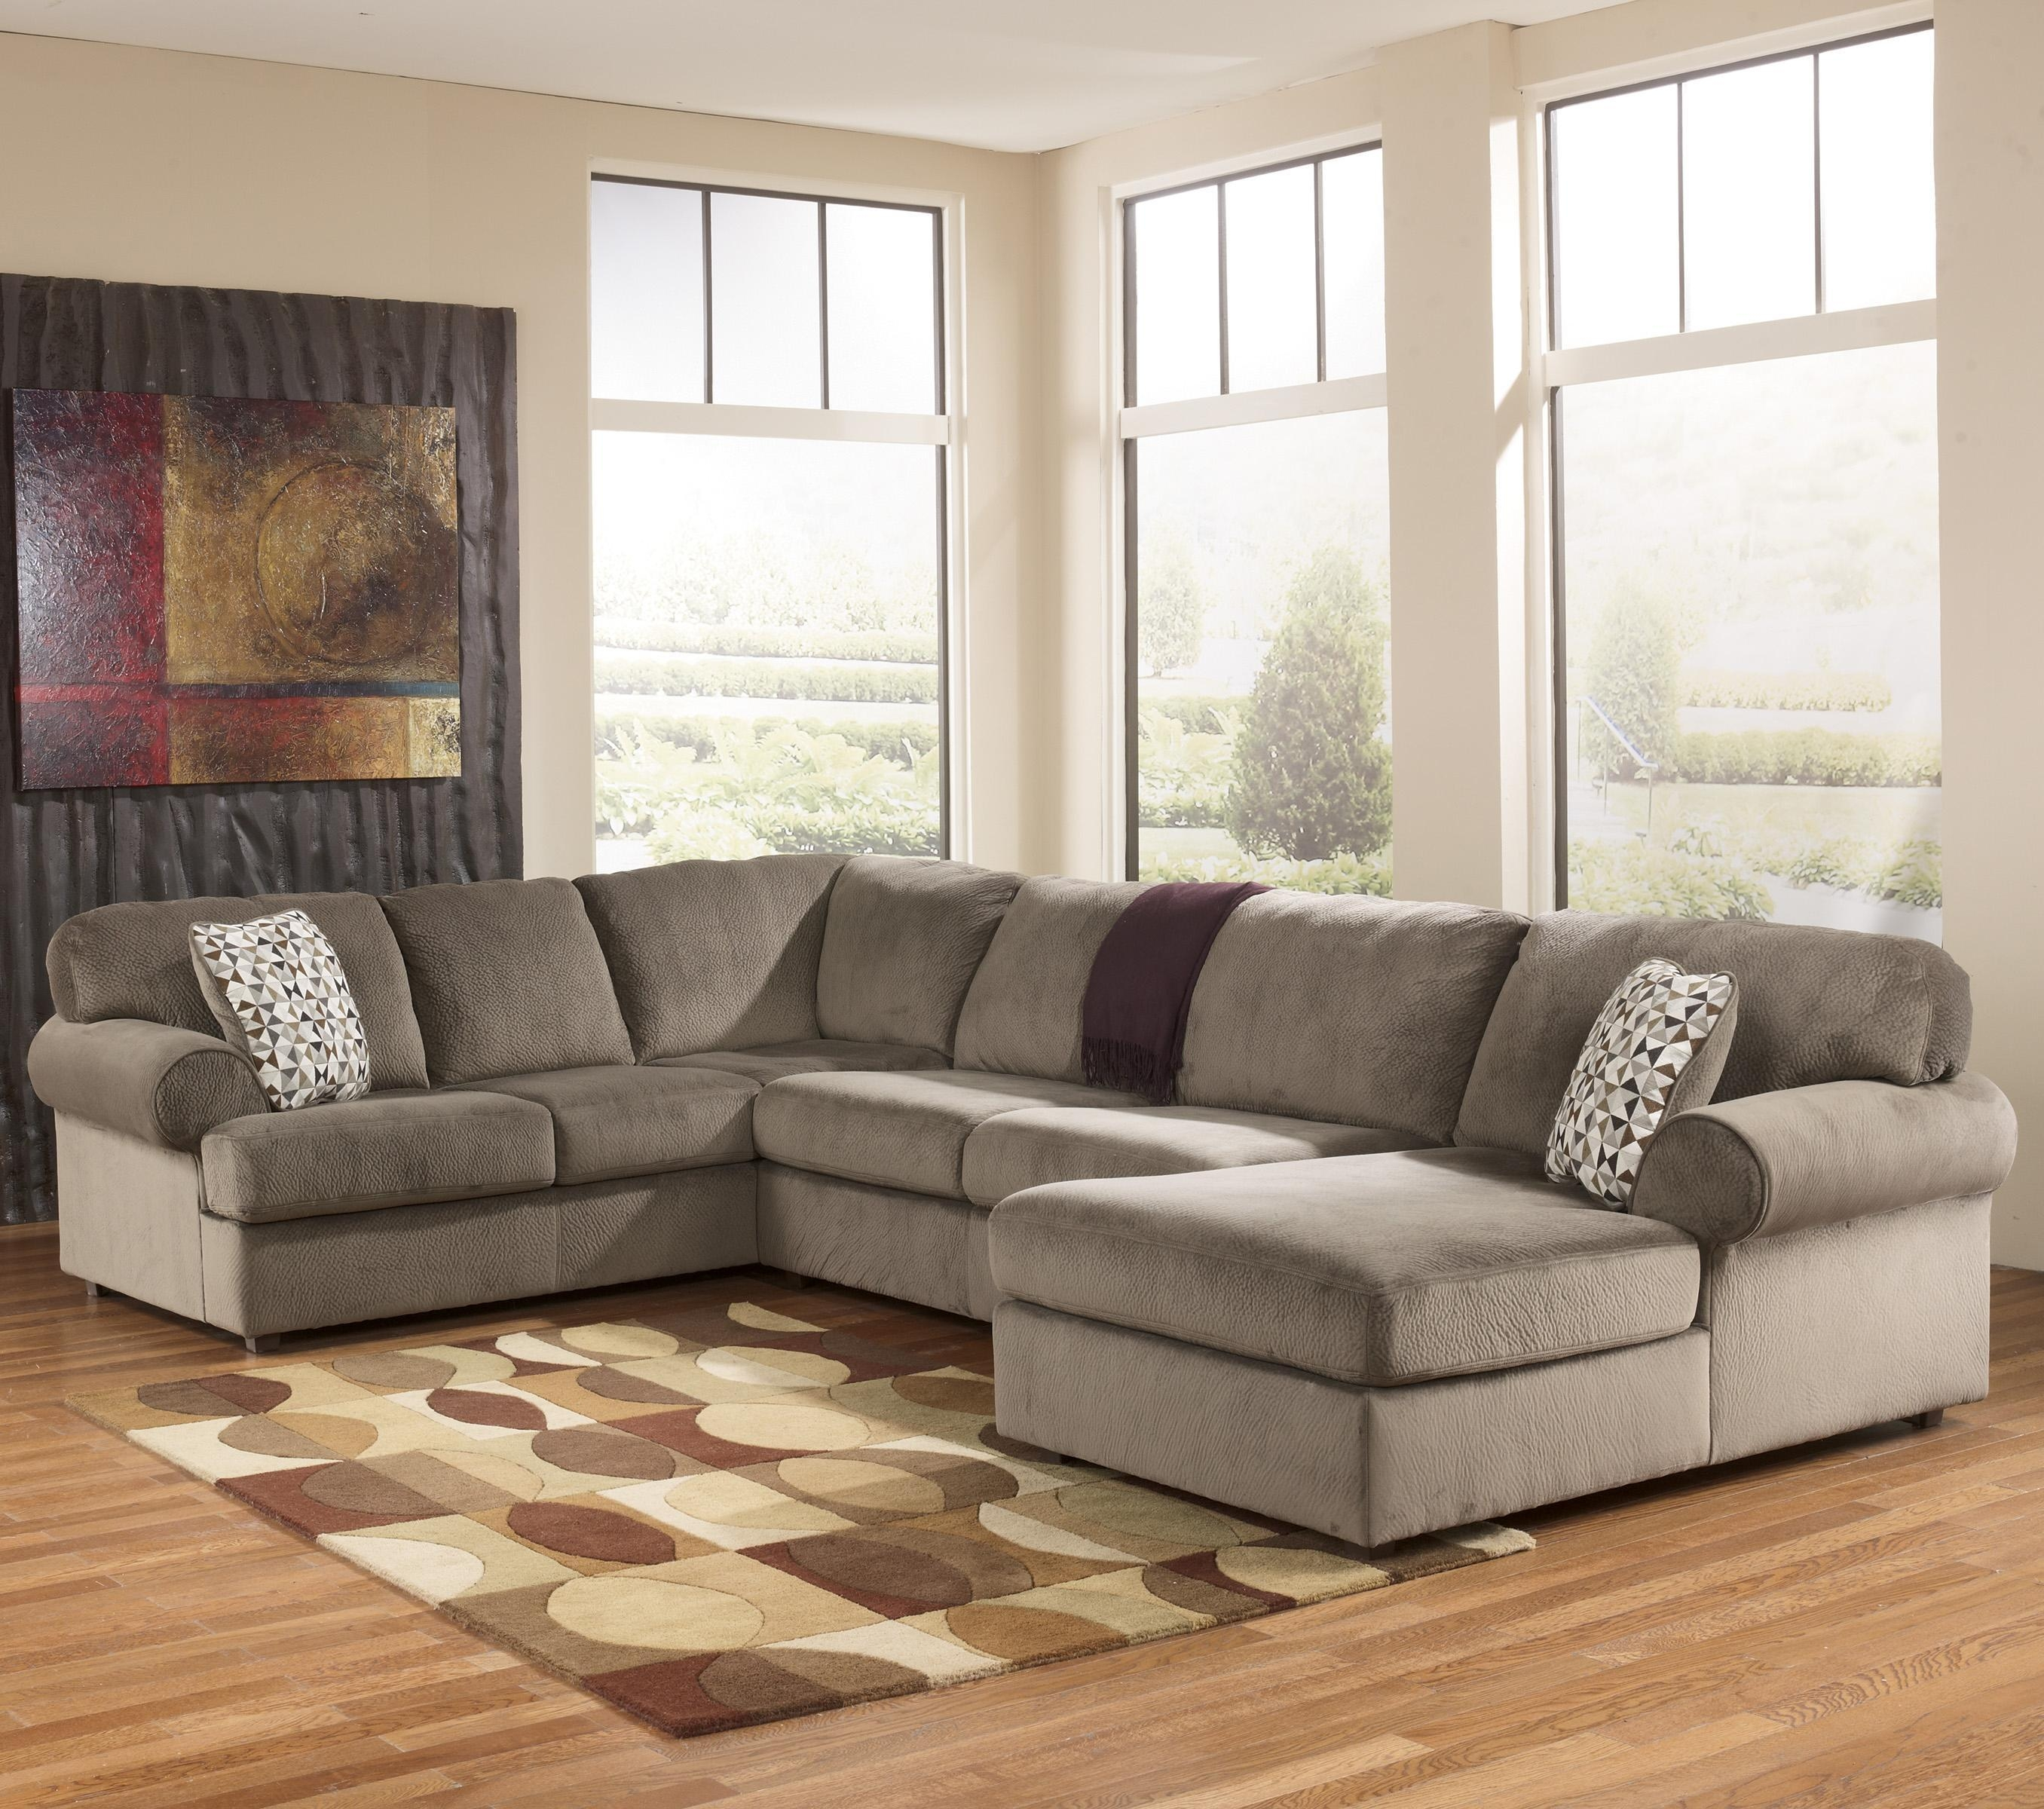 Sofas Center : Ashley Furniture Sectionals Sectional Couch Gray Within Ashley Corduroy Sectional Sofas (Image 16 of 20)